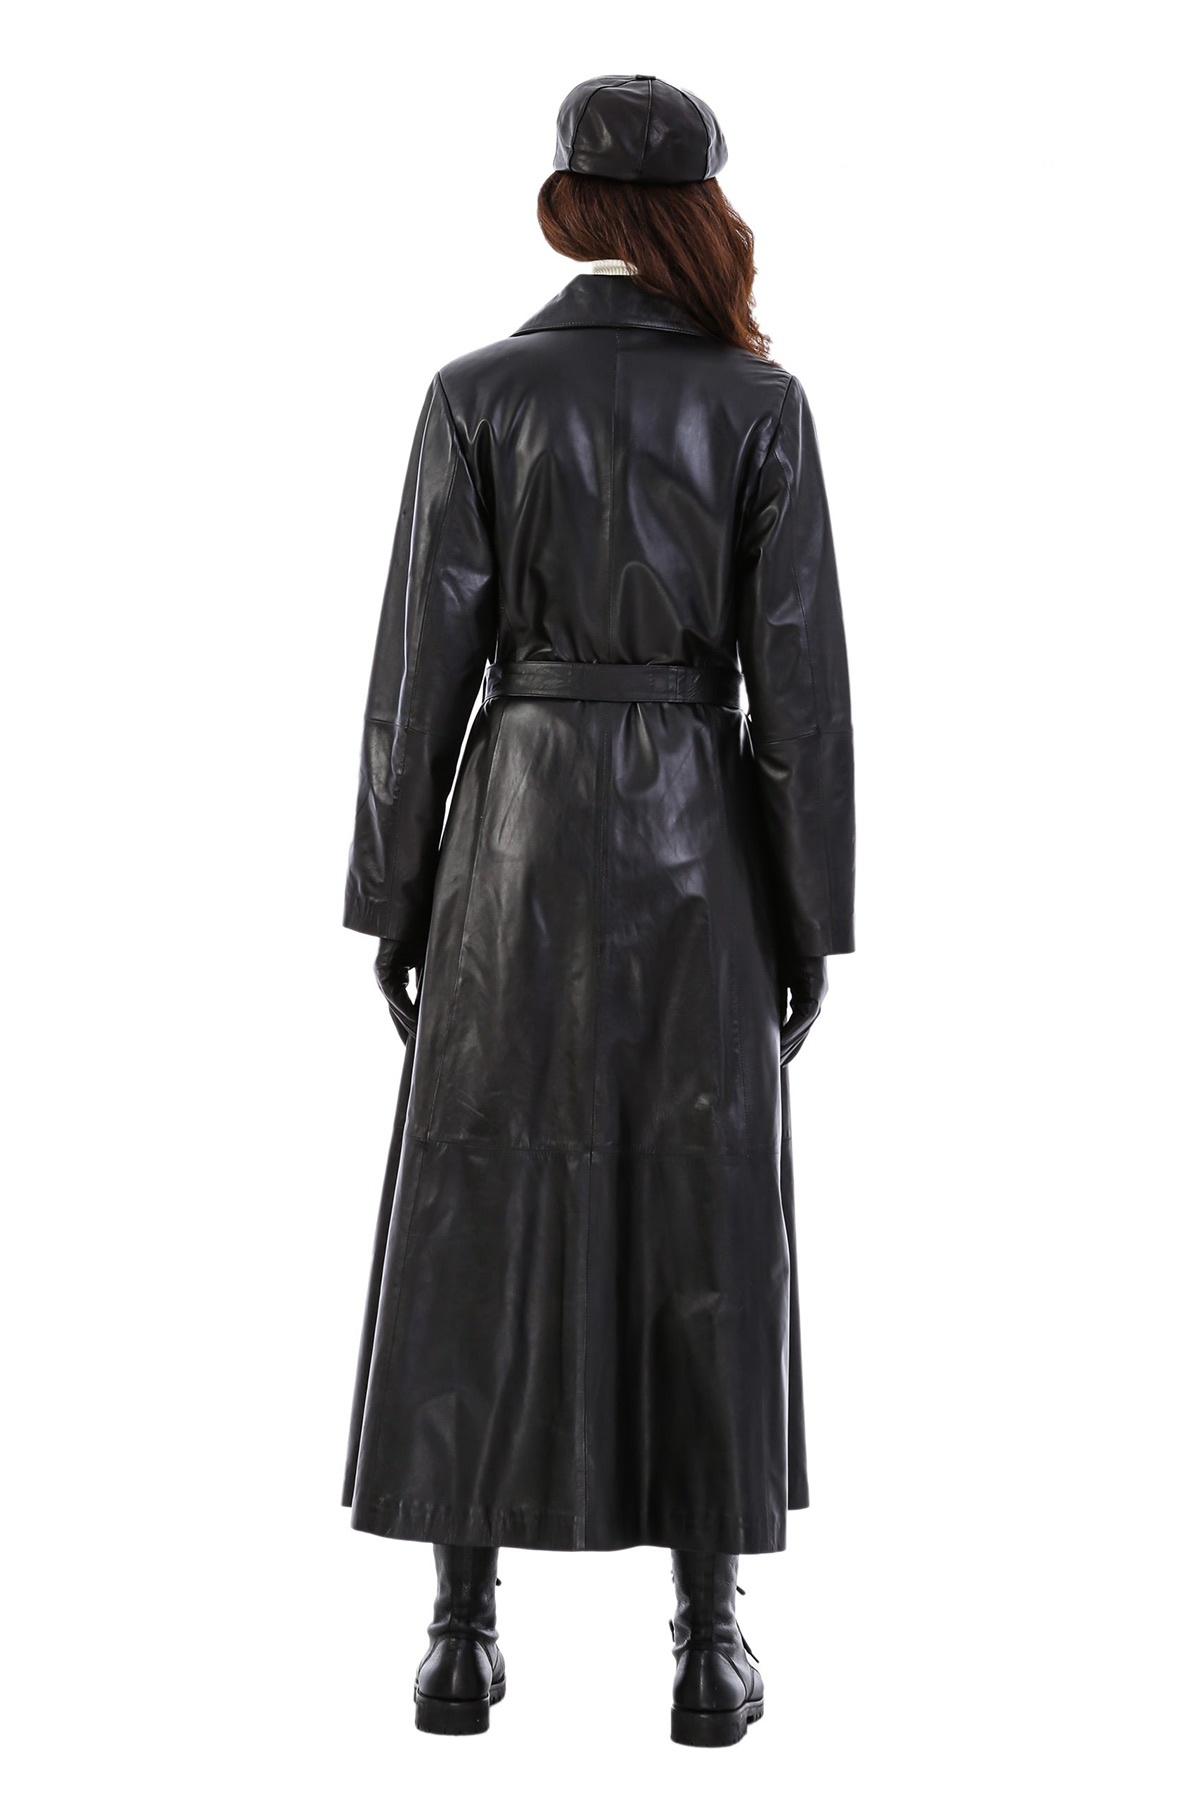 Patent Leather Coats Womens